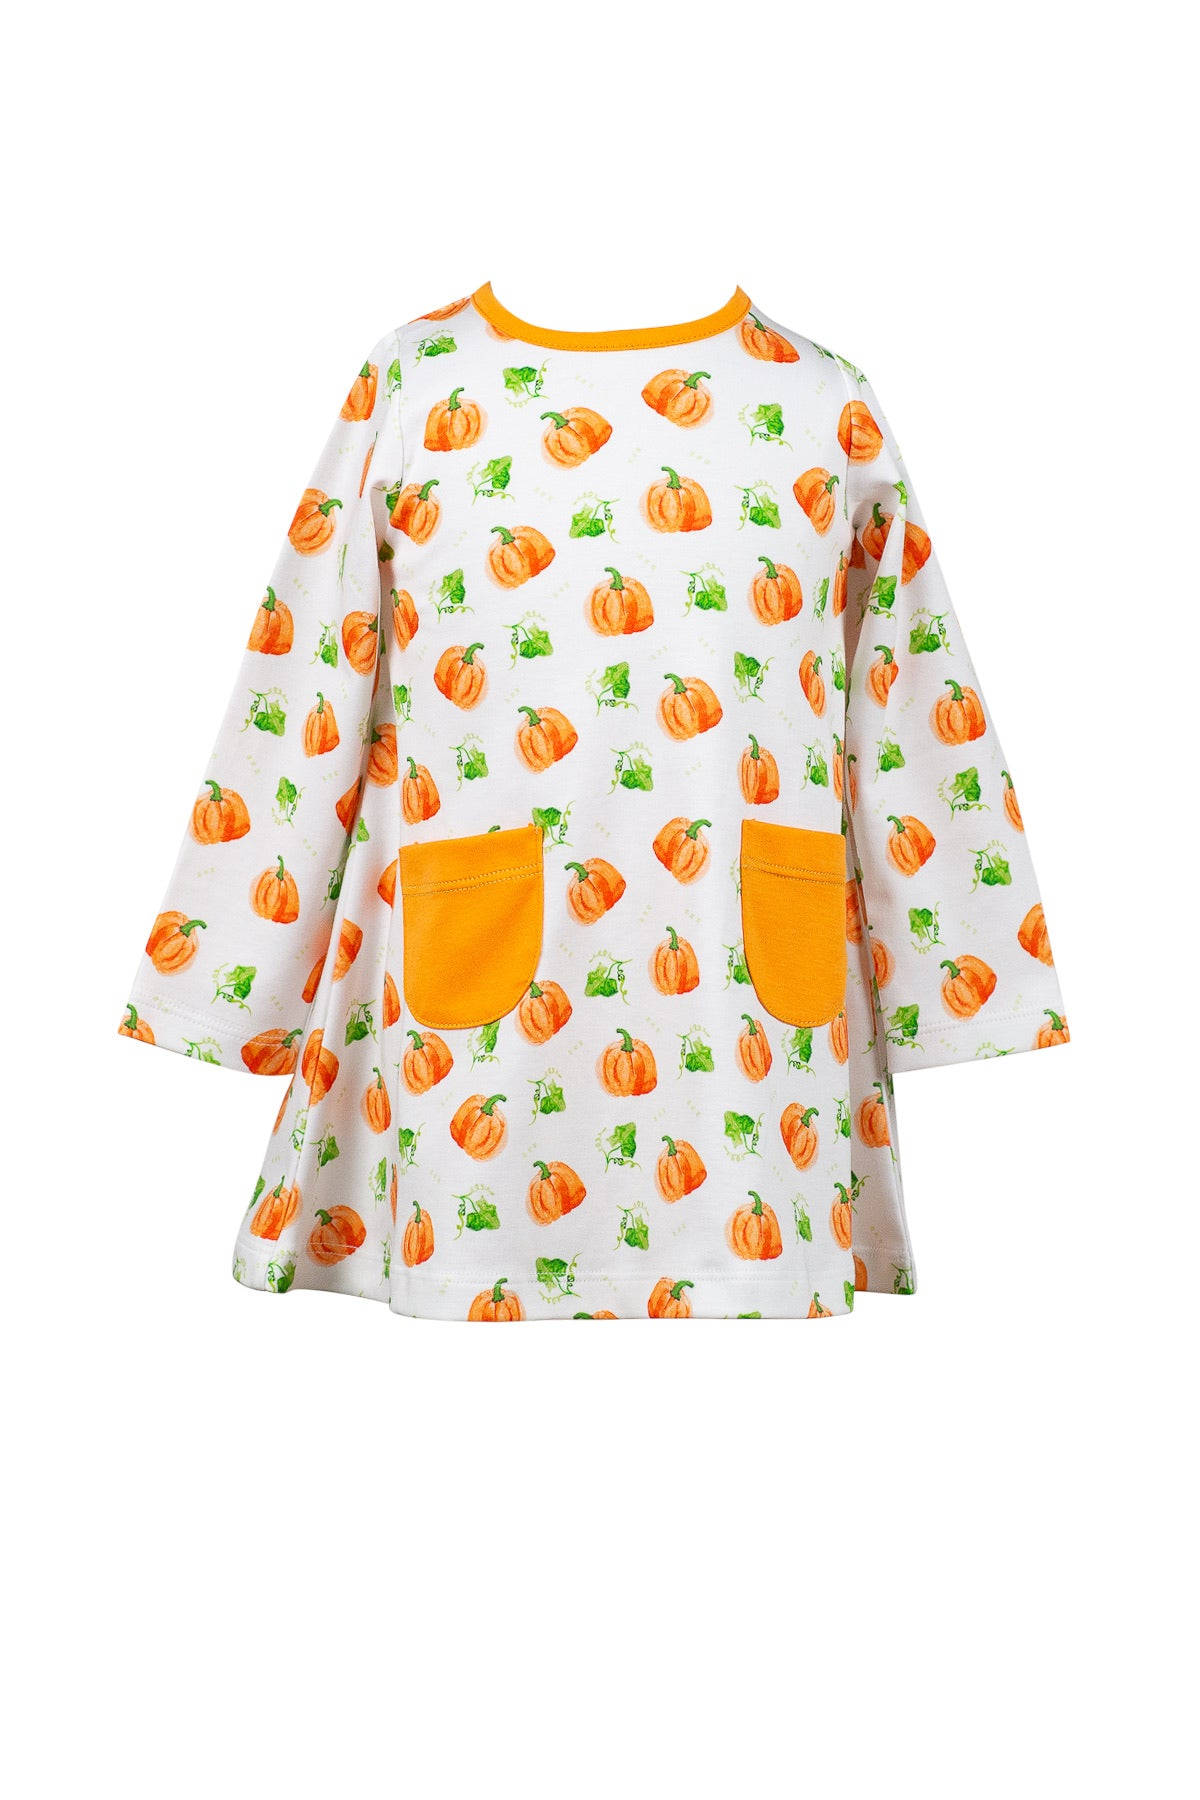 Pumpkin pima dress by The Proper Peony